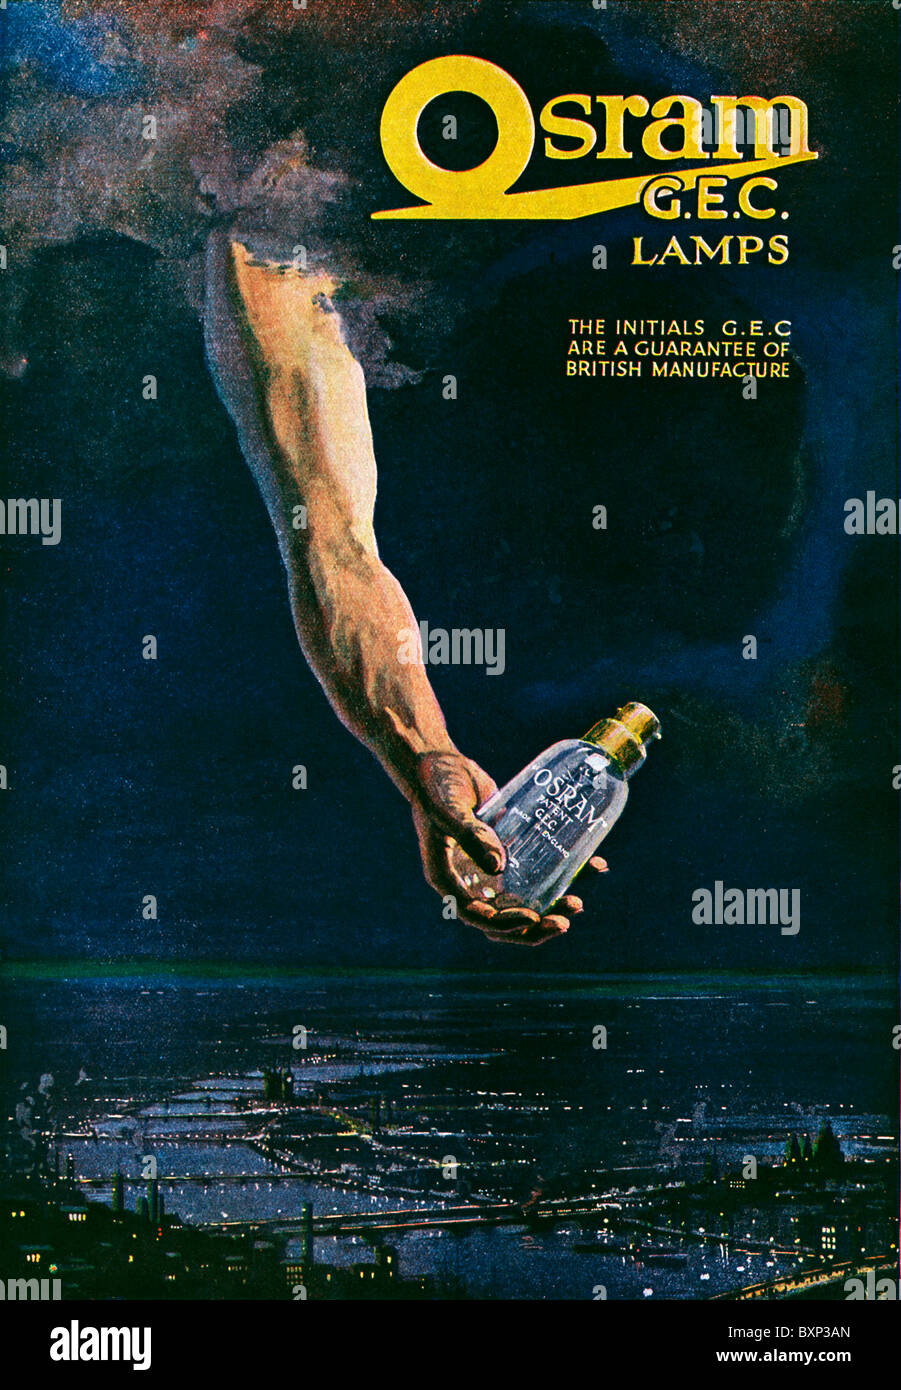 Osram GEC L&s 1919 advert for the electric light bulbs a hand from the heavens holds one over London at night  sc 1 st  Alamy & Osram GEC Lamps 1919 advert for the electric light bulbs a hand ...